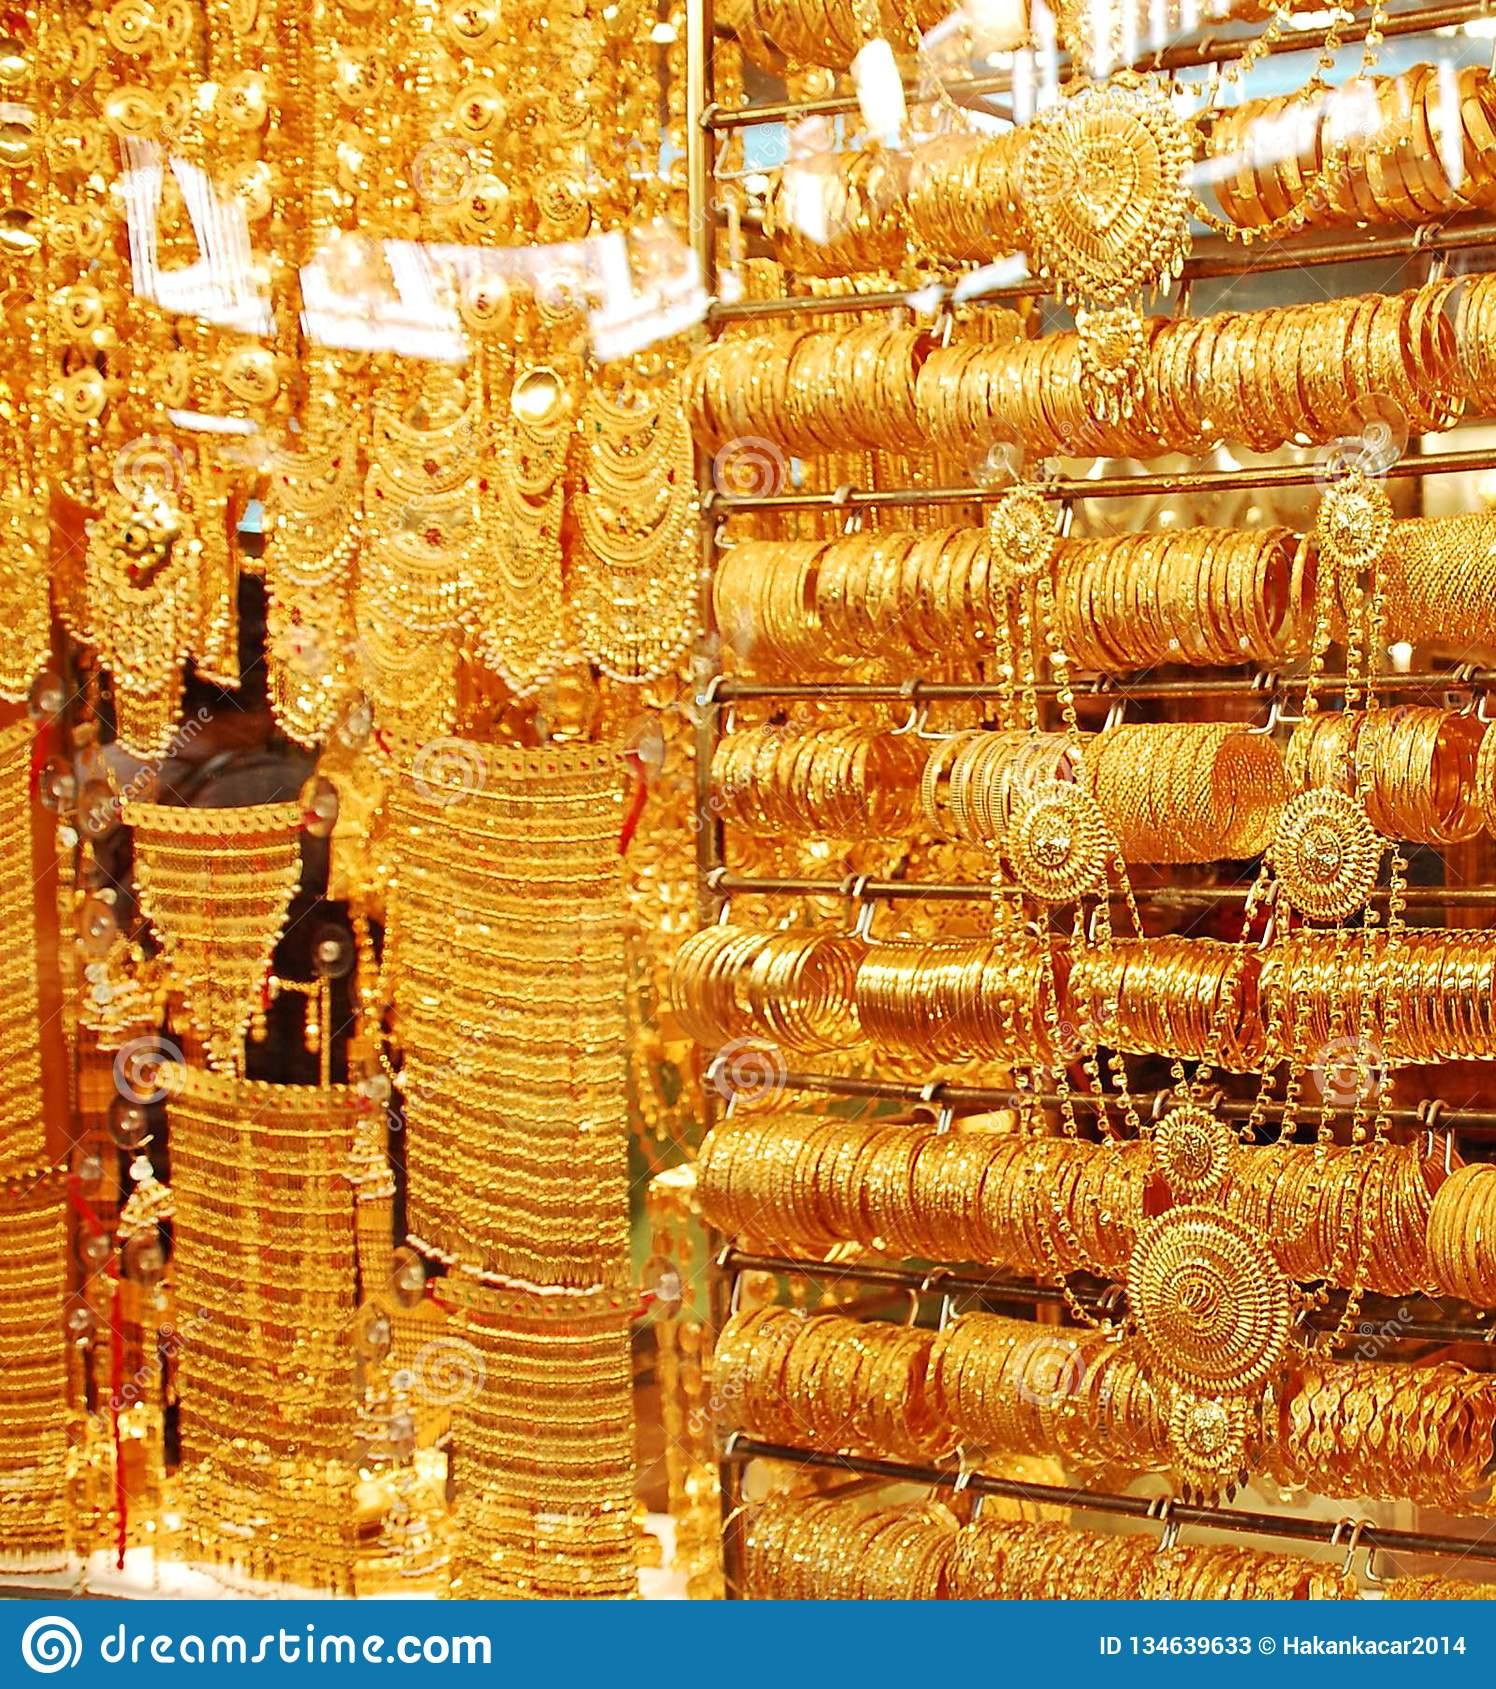 Gold Jewellery Shop Over Shops Sell Gold Jewelry At The